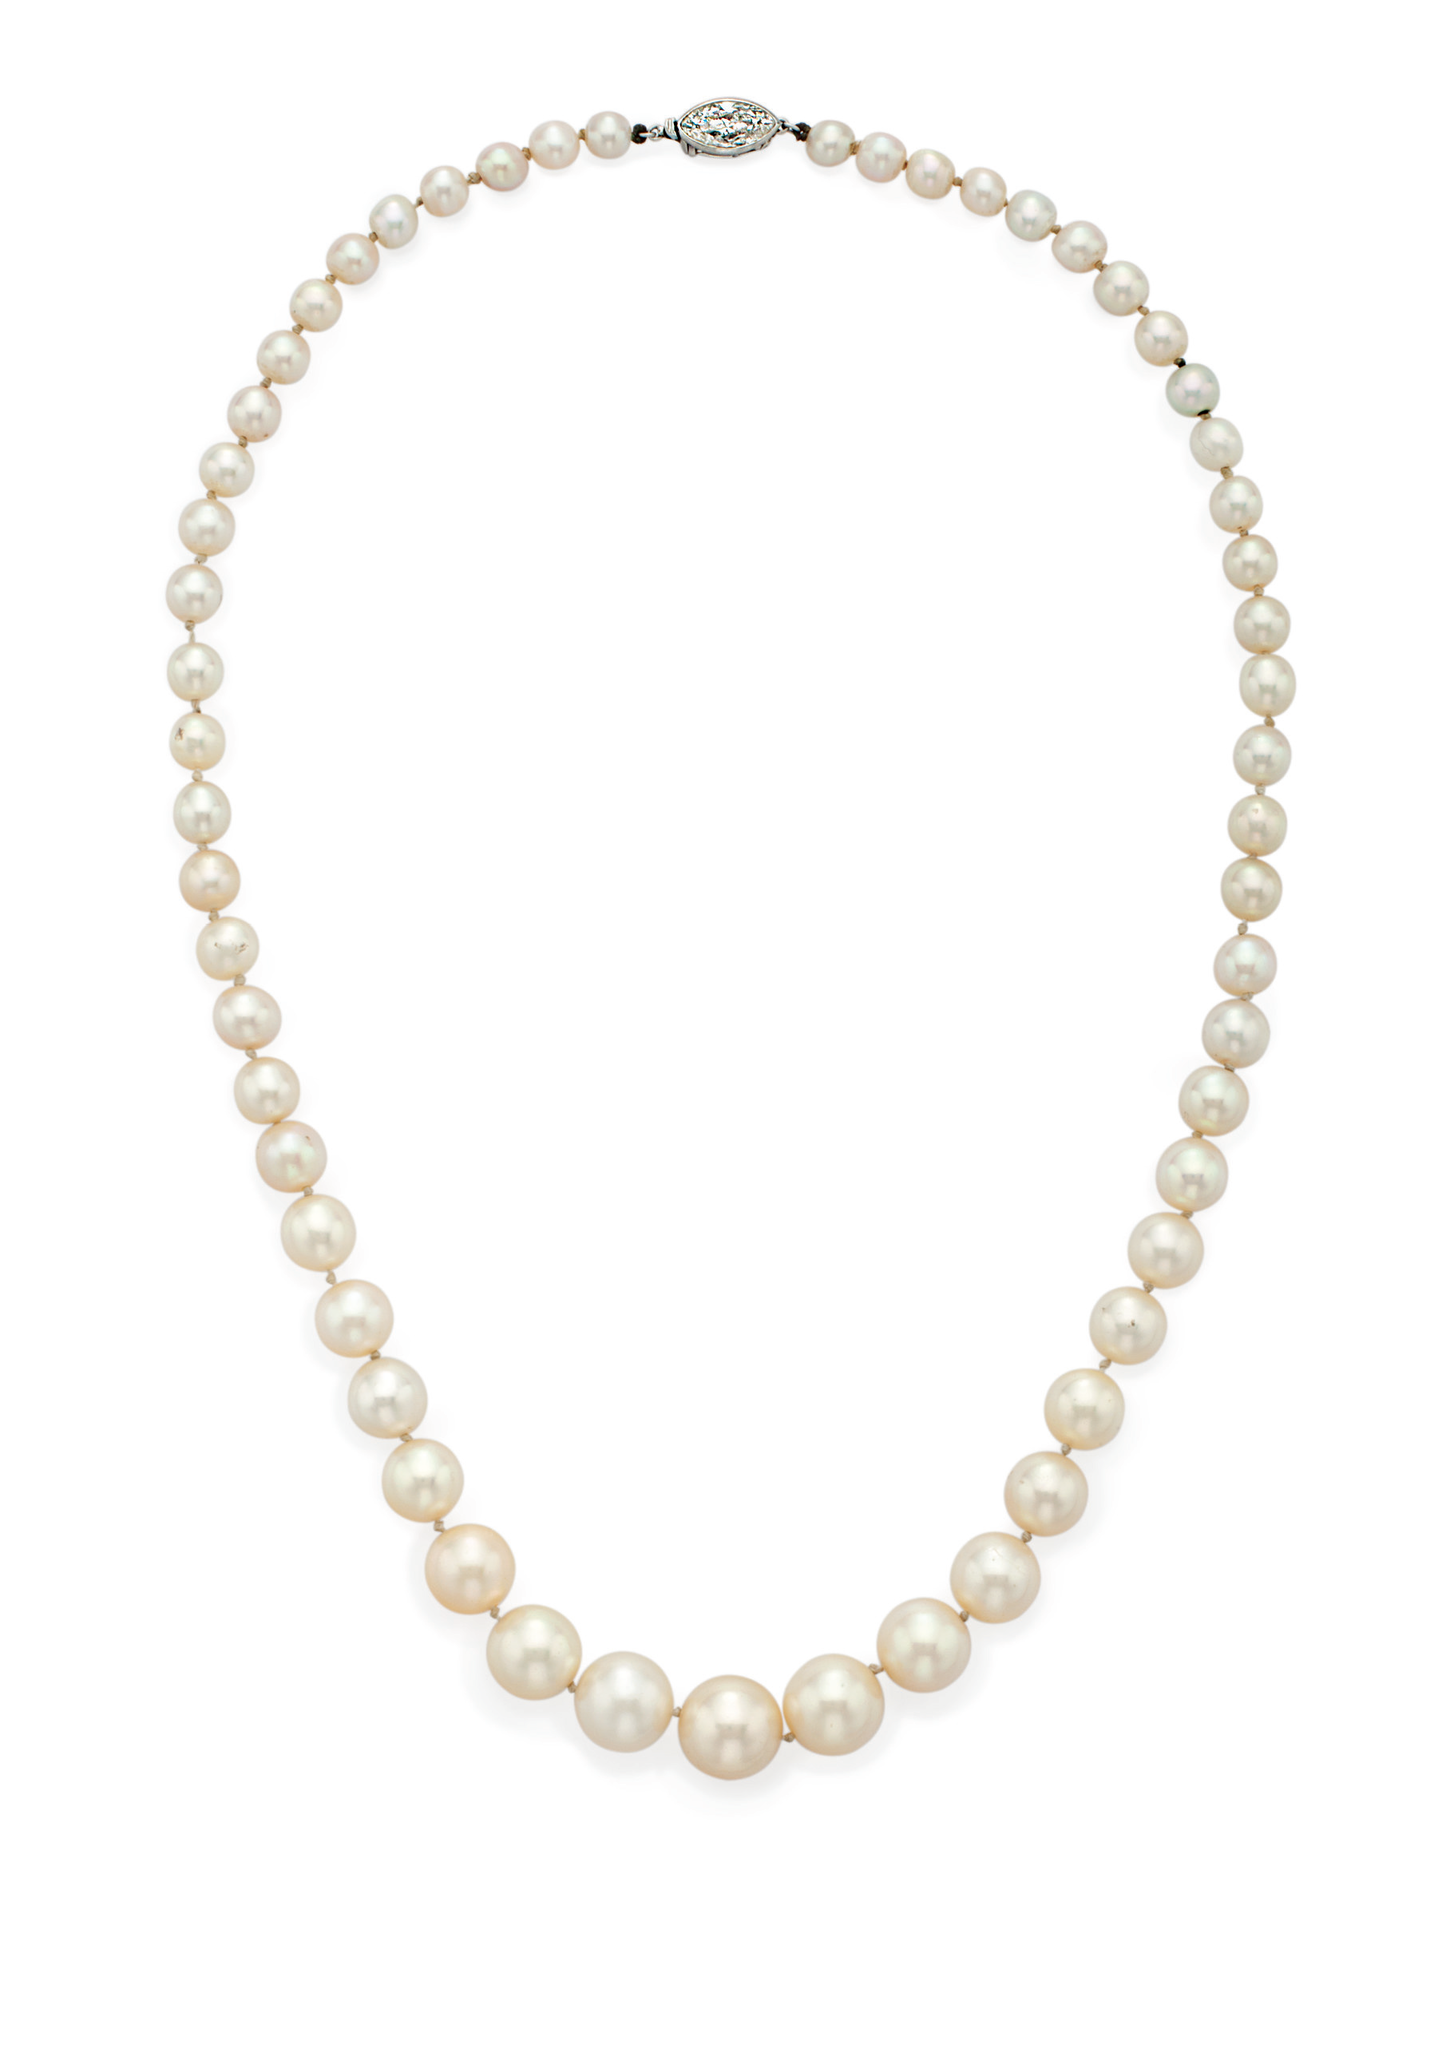 An Art Deco natural pearl and diamond necklace, by Cartier